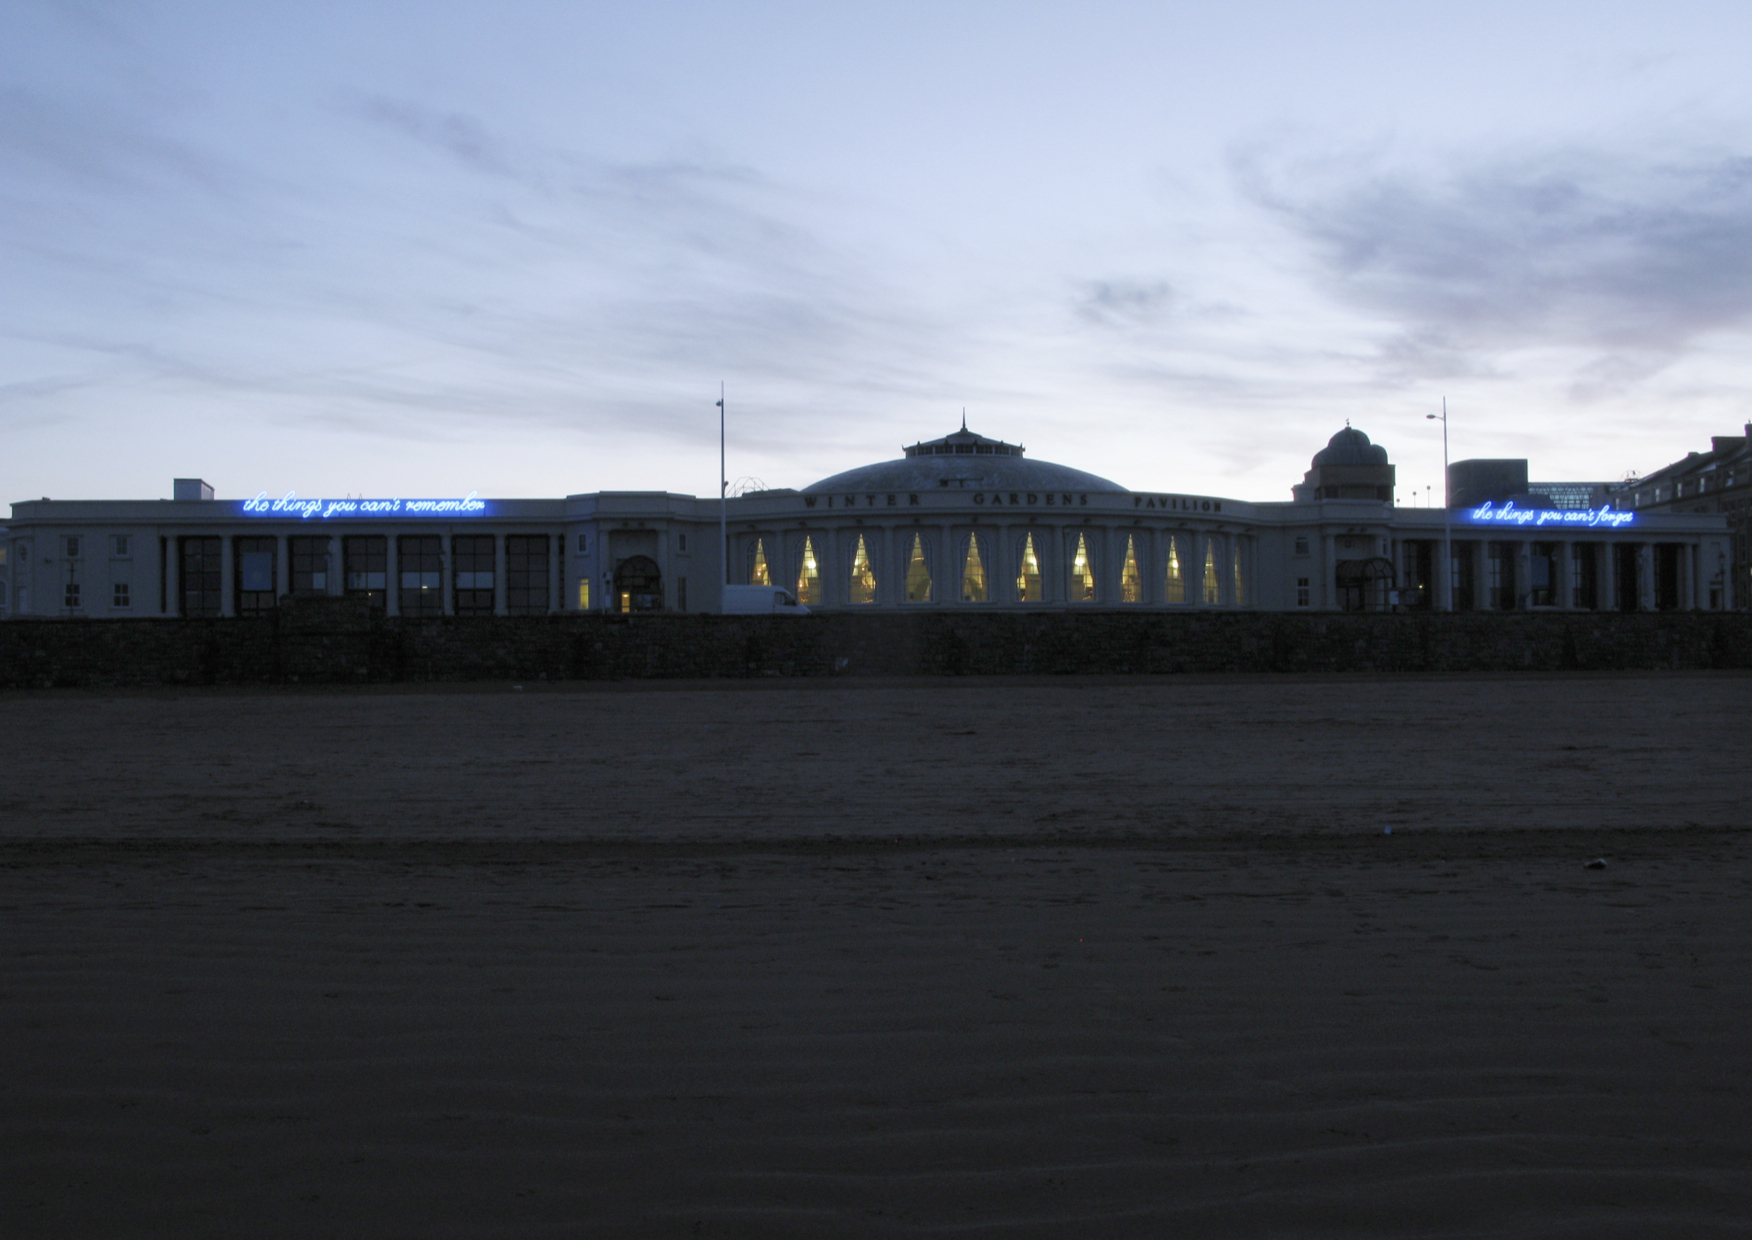 Tim Etchells, Winter Piece, 2010. Installation view. Situations for Wonders of Weston, Weston Super Mare, UK.